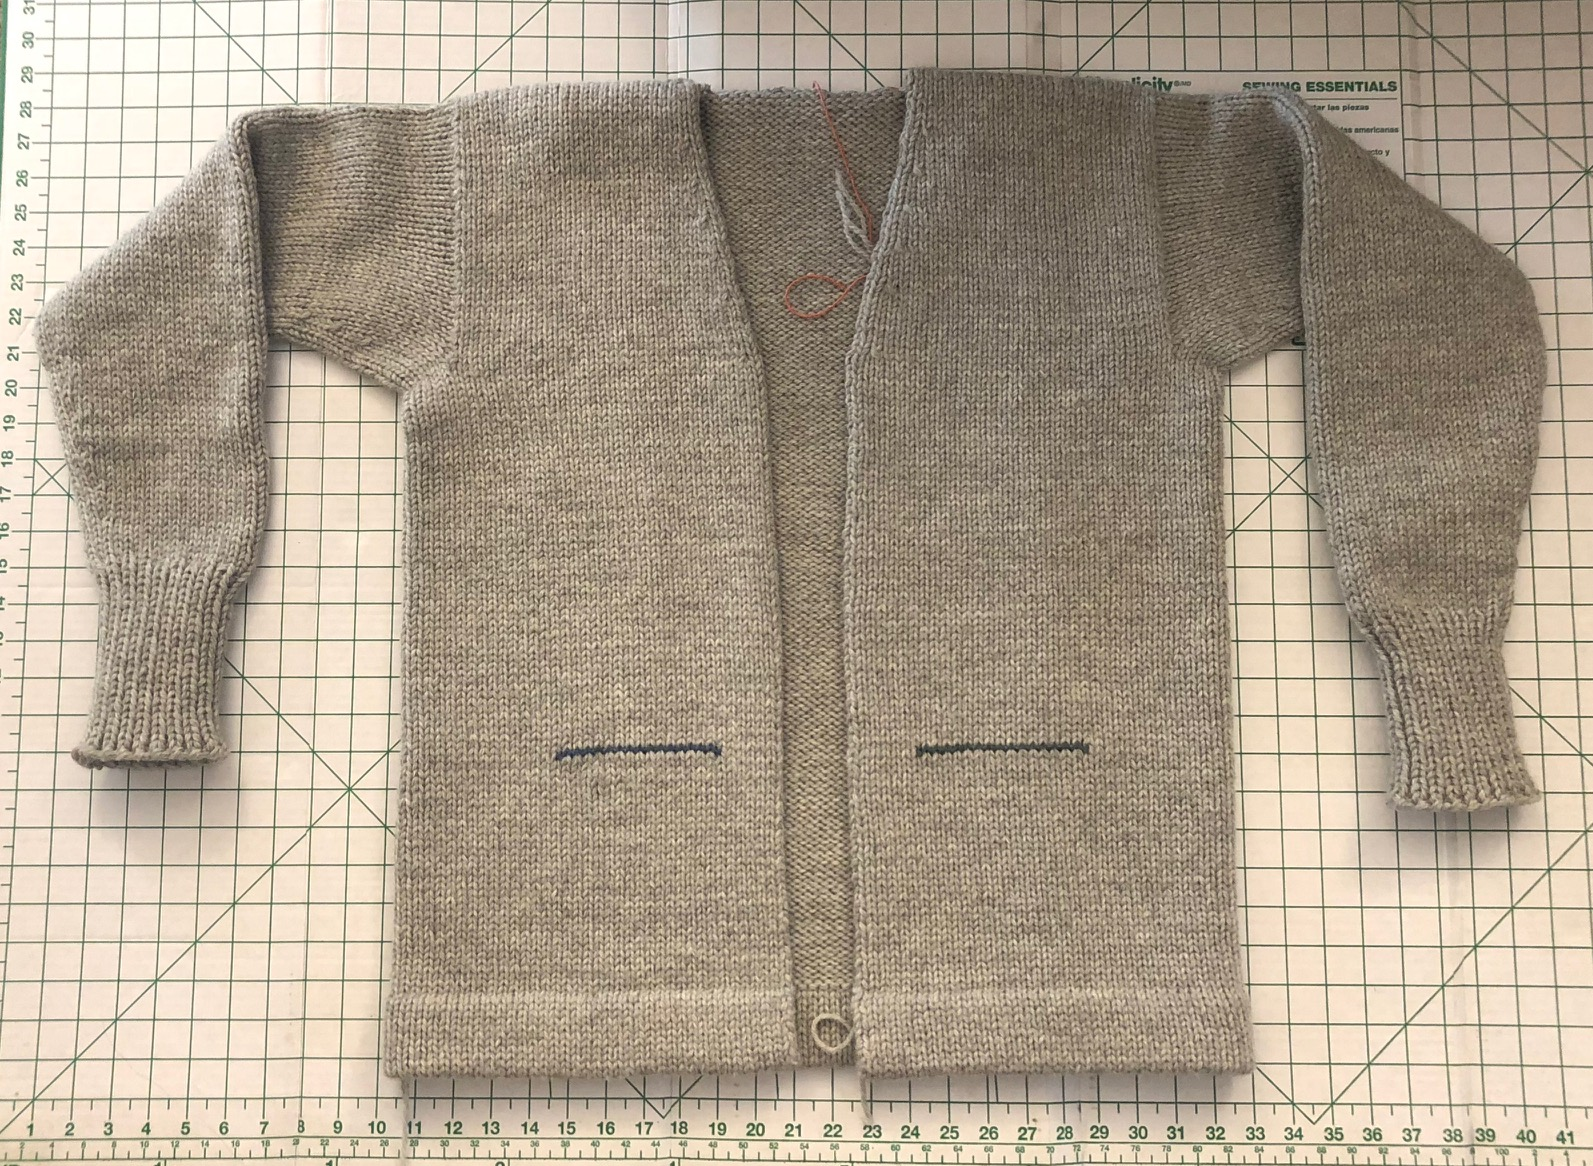 fe7a19f922 The Hall of Fame Knitter  Work-in-Progress  Status of the Ty Cobb Sweater